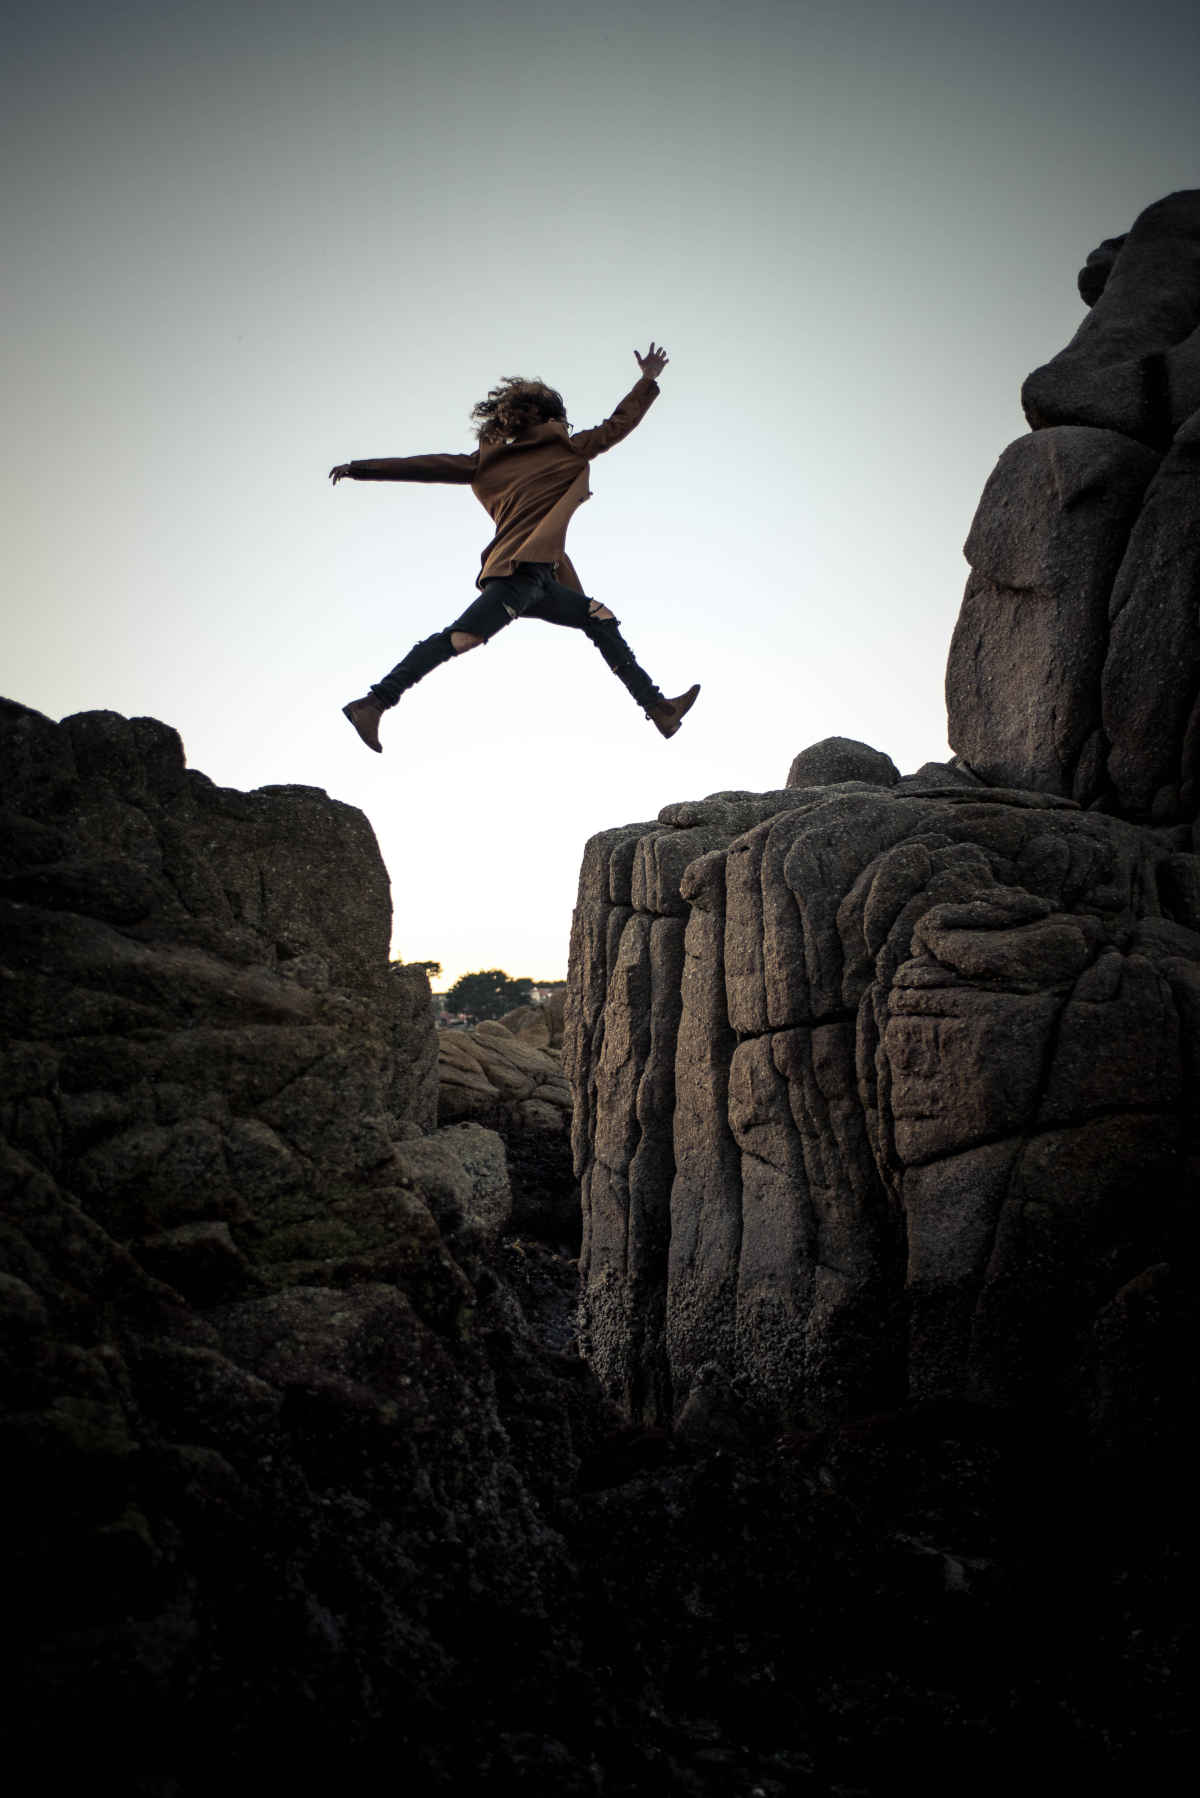 woman jumping over a cliff taking risk